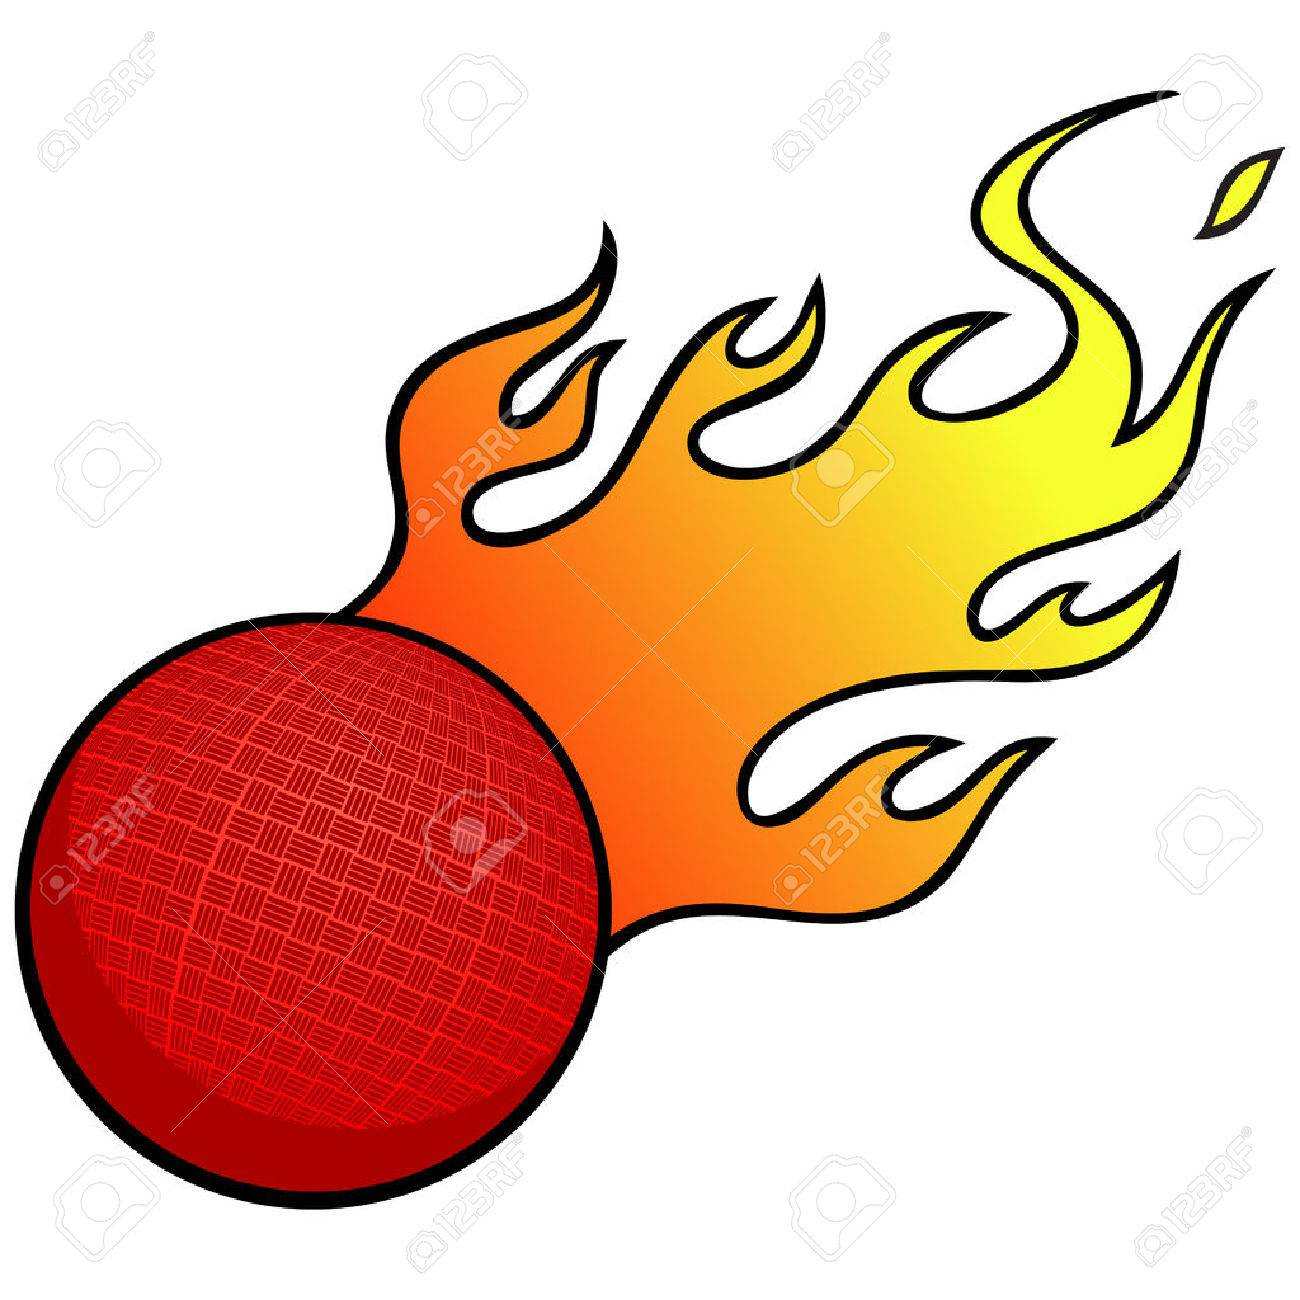 dodgeball with flames royalty free cliparts vectors and stock rh 123rf com Dodgeball Clip Art Life Is Good Dodgeball Vector